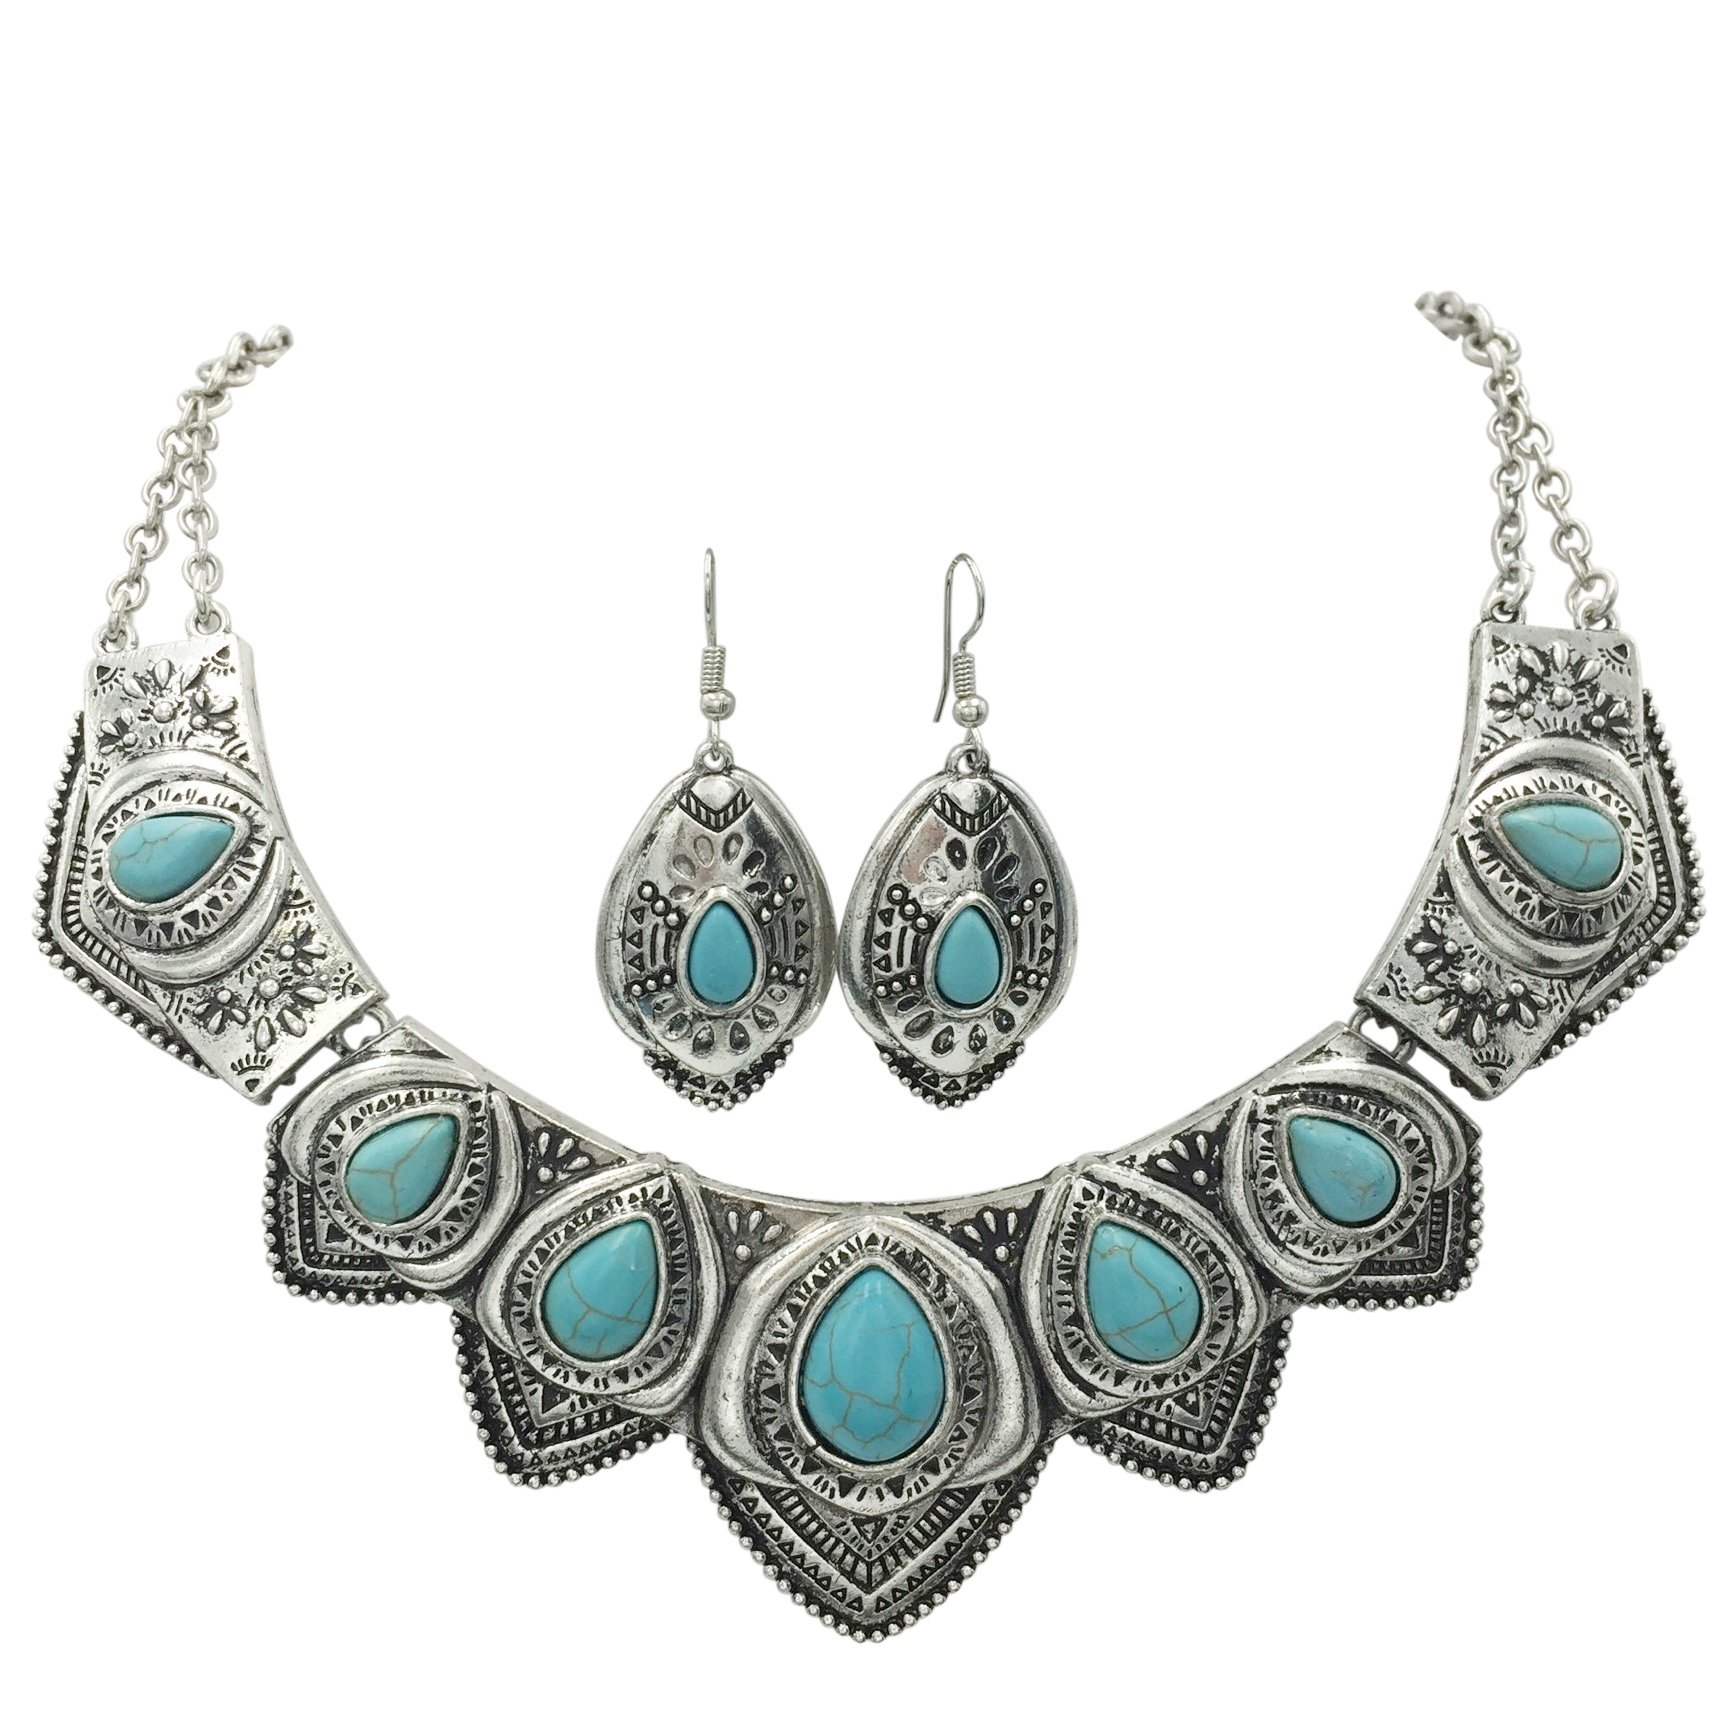 Western Style Imitation Turquoise Necklace and Earrings Set (Silver Tone Scalloped) by Gypsy Jewels